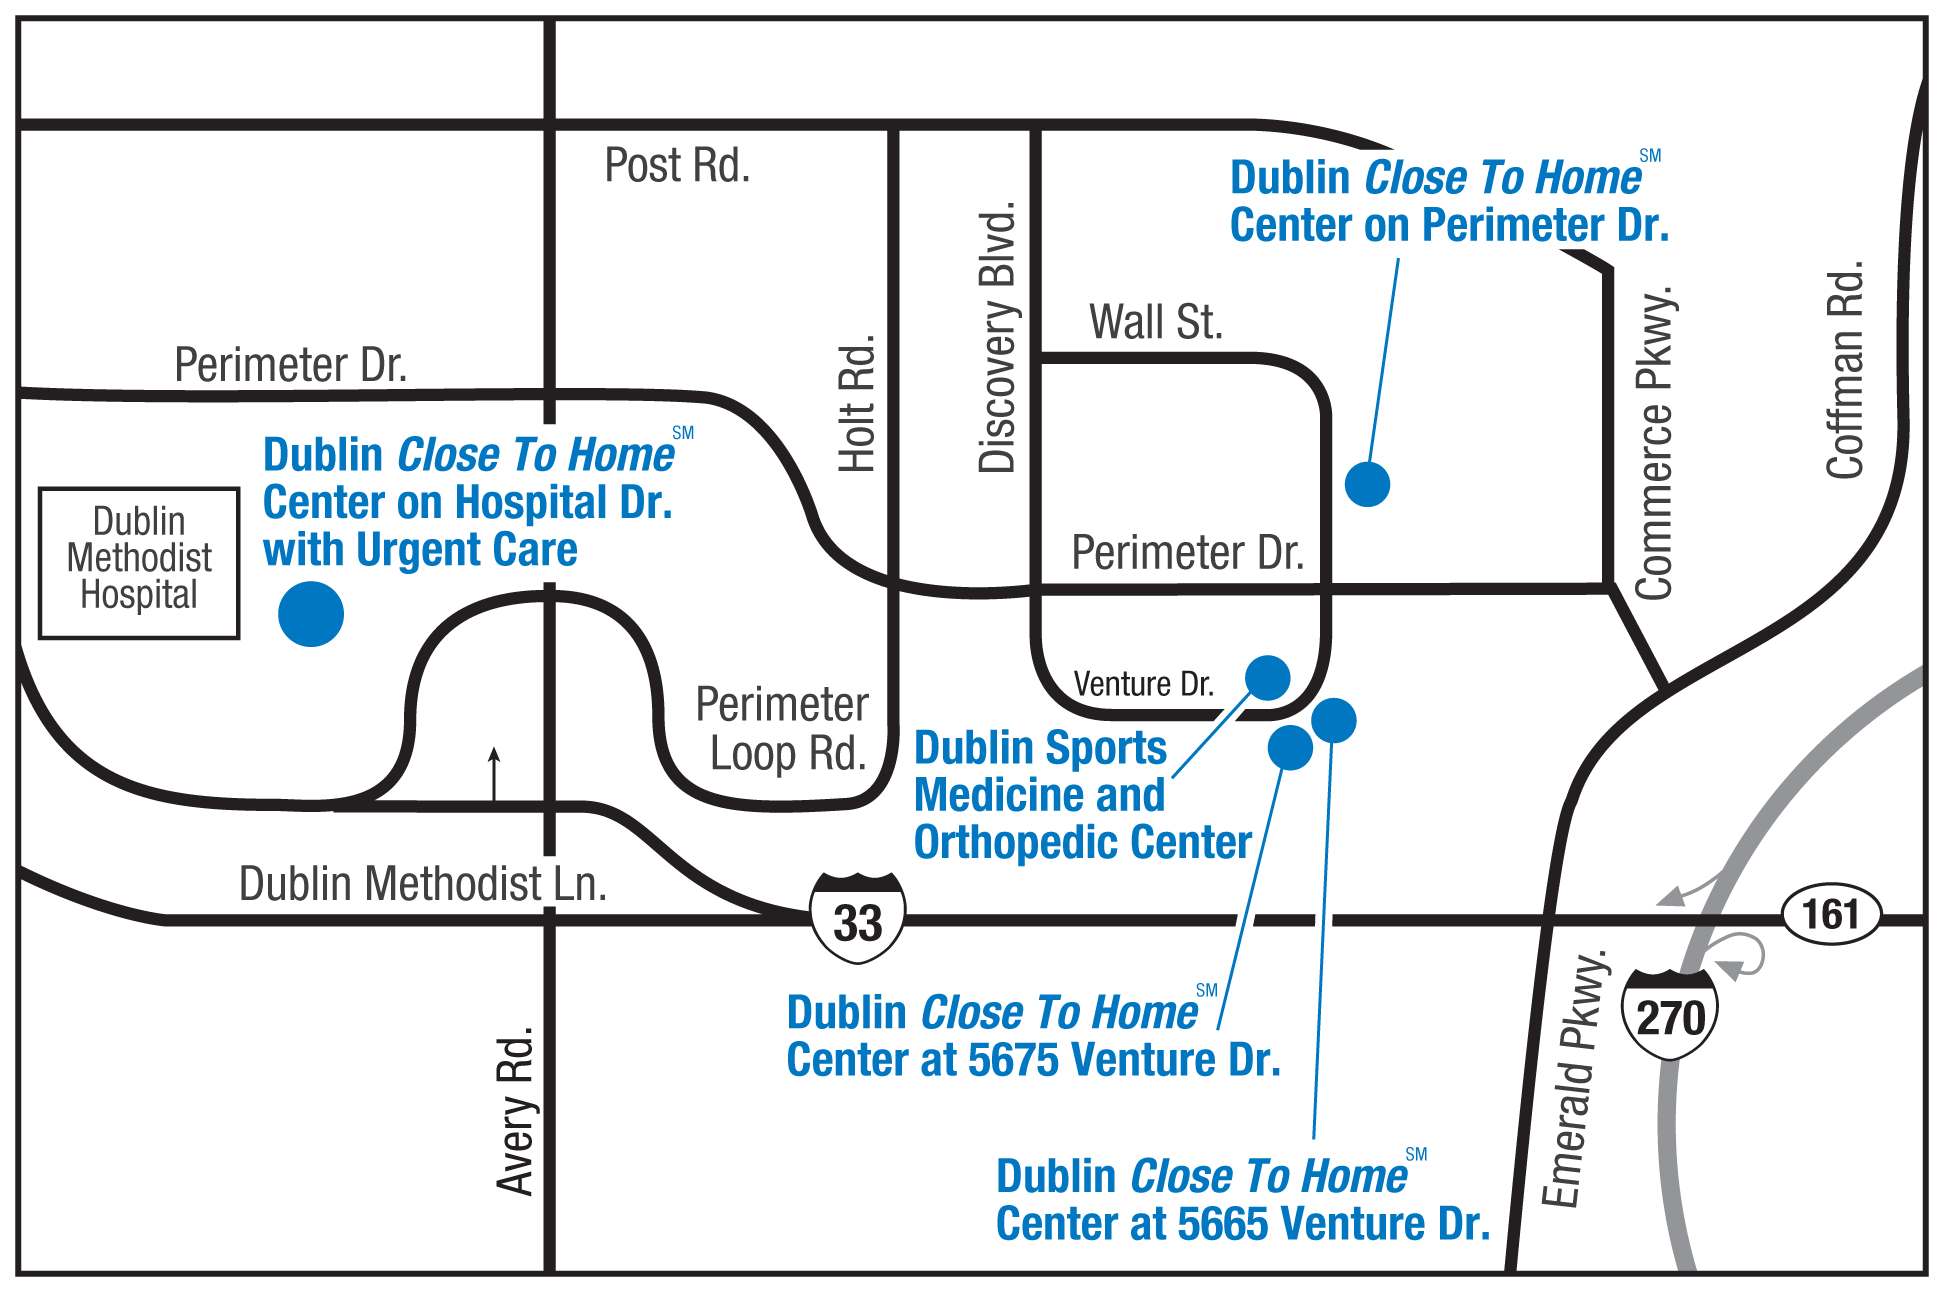 Dublin Close To Home Centers Map